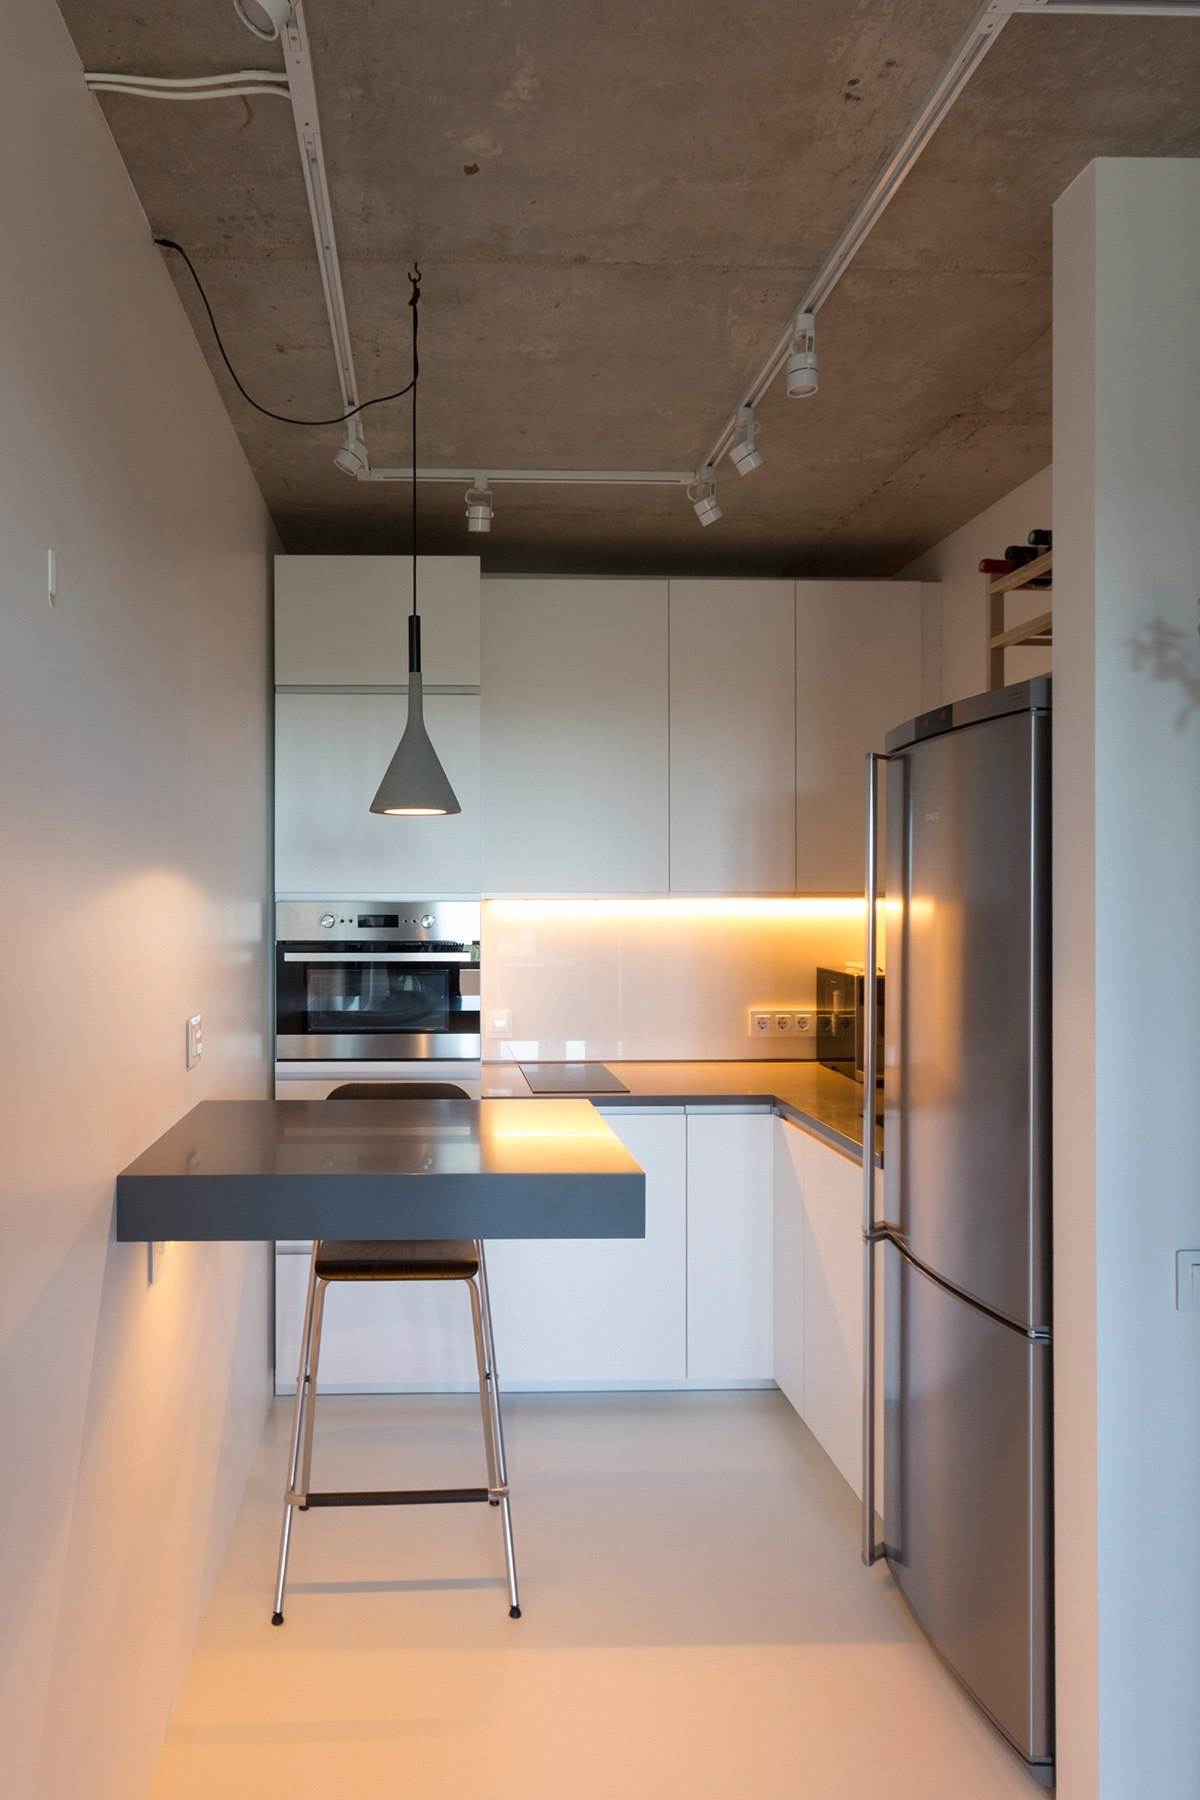 http://cdn.home-designing.com/wp-content/uploads/2016/10/Minimalist-kitchen-white-walls-industrial-ceiling-grey-hanging-light-and-ledge-table.jpg